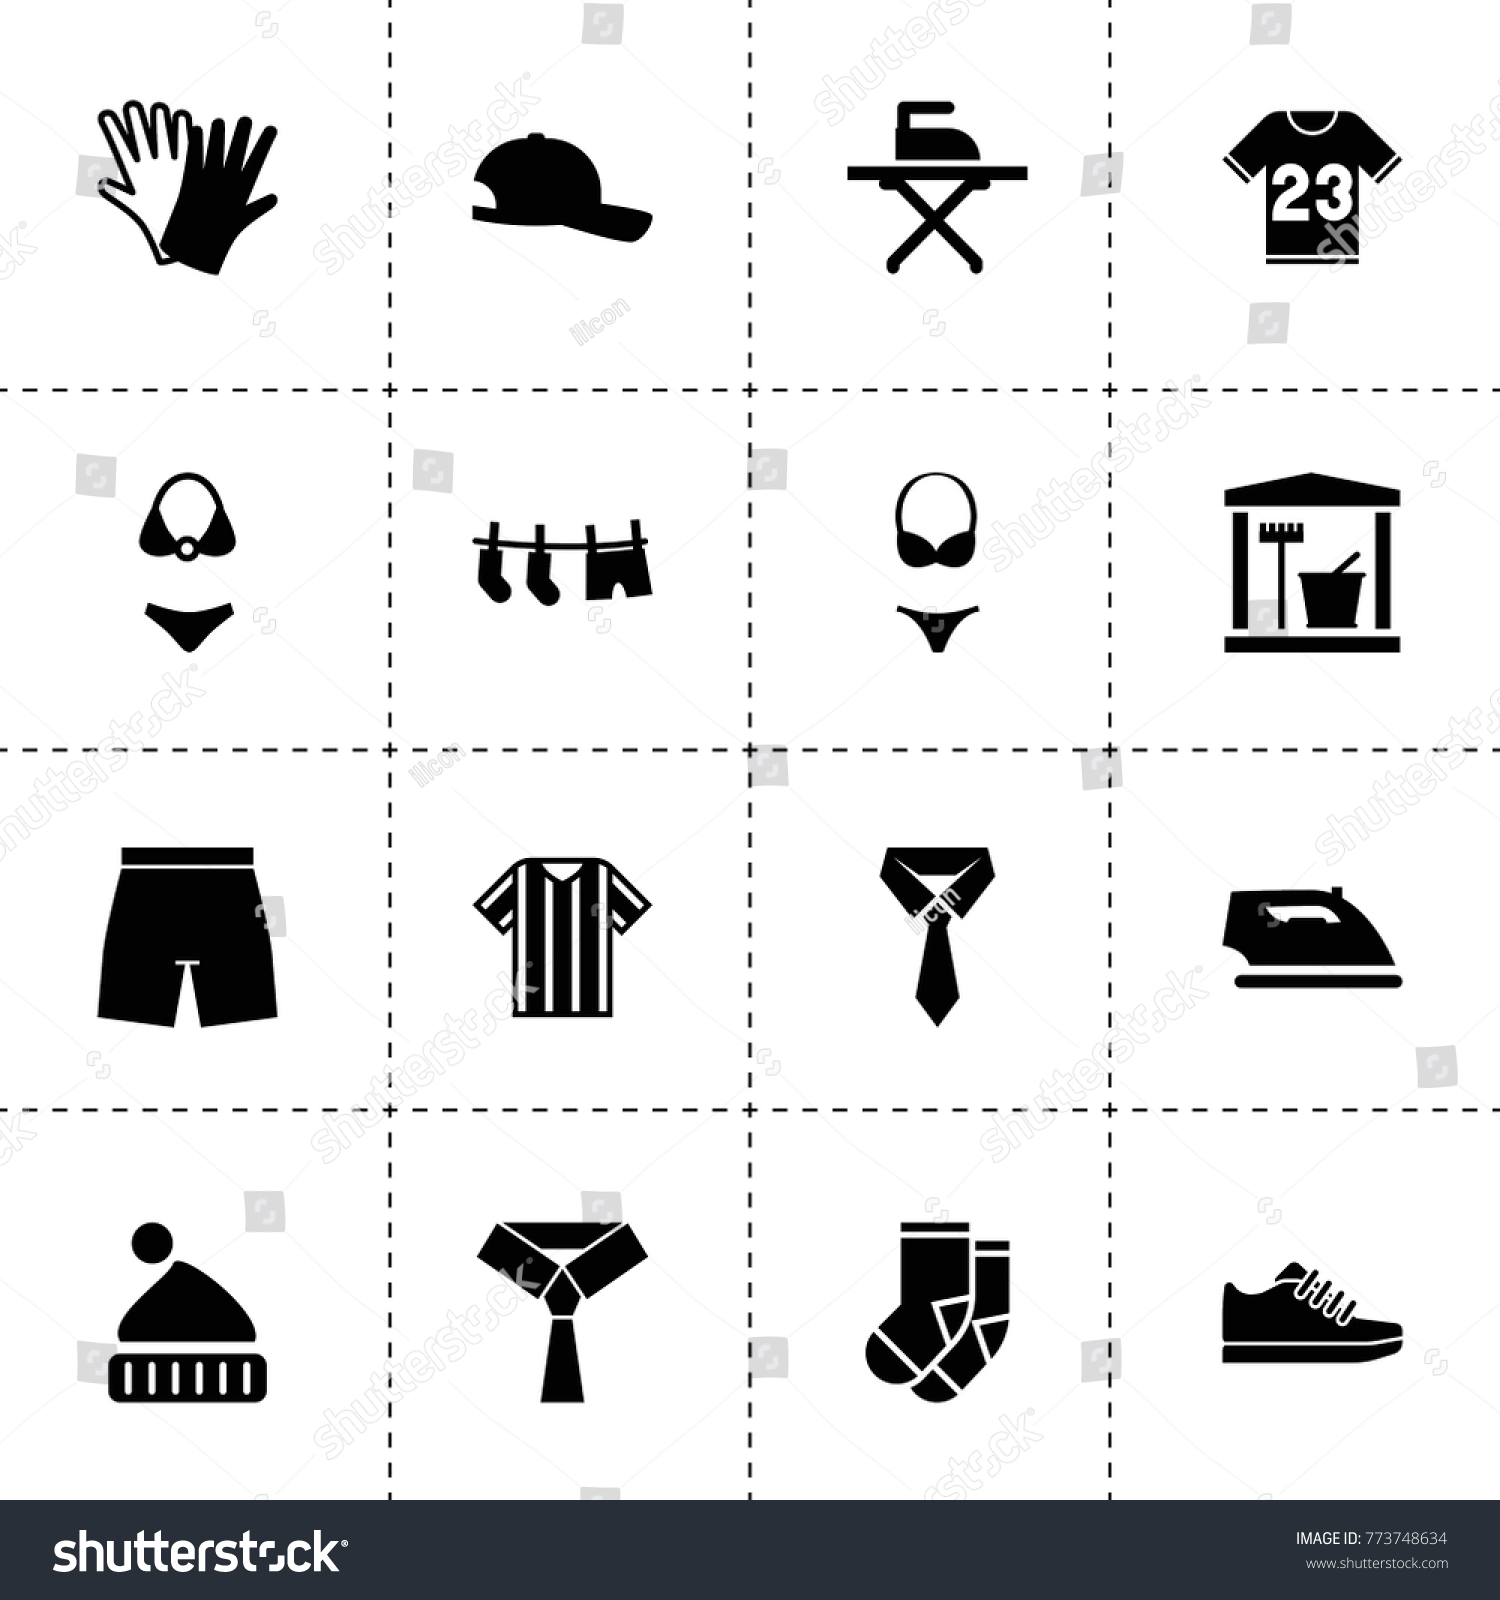 Clothing Icons Vector Collection Filled Clothing Stock Vector